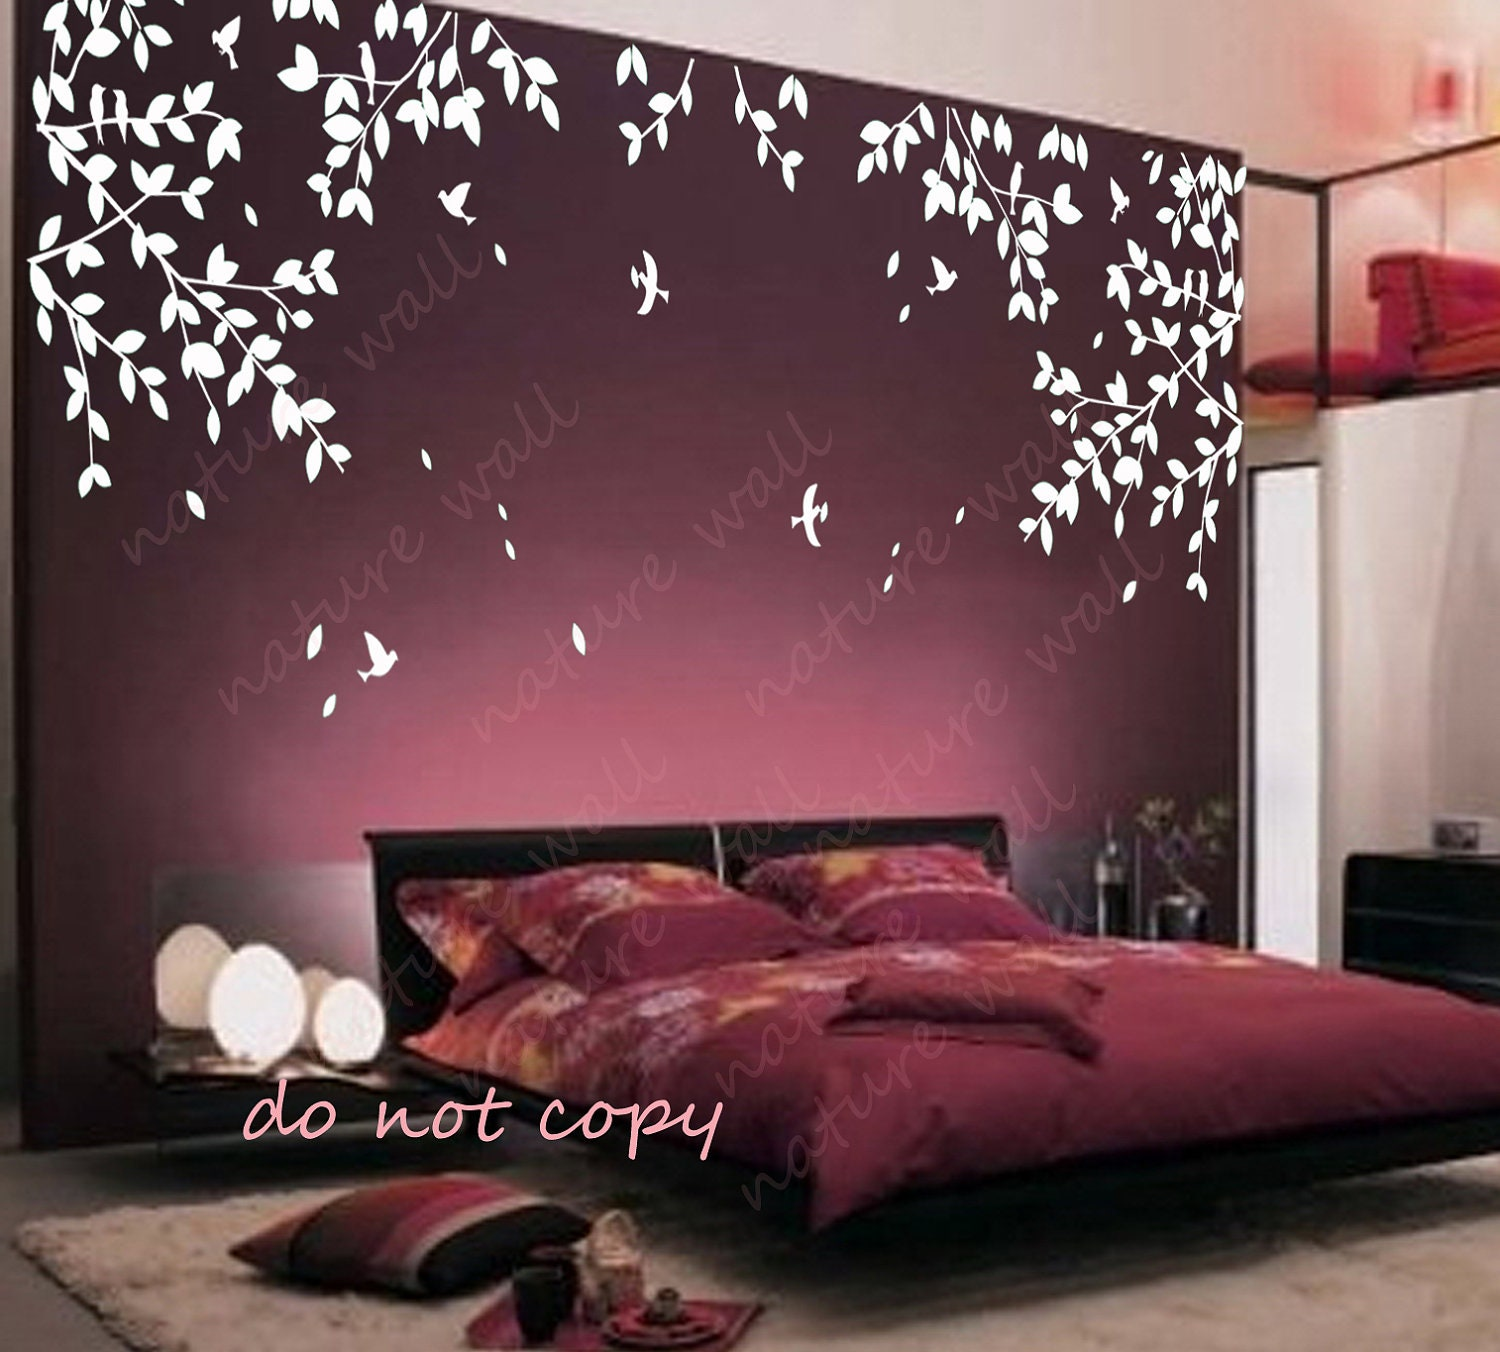 Wall decor made from branches interior decorating for Design wall mural